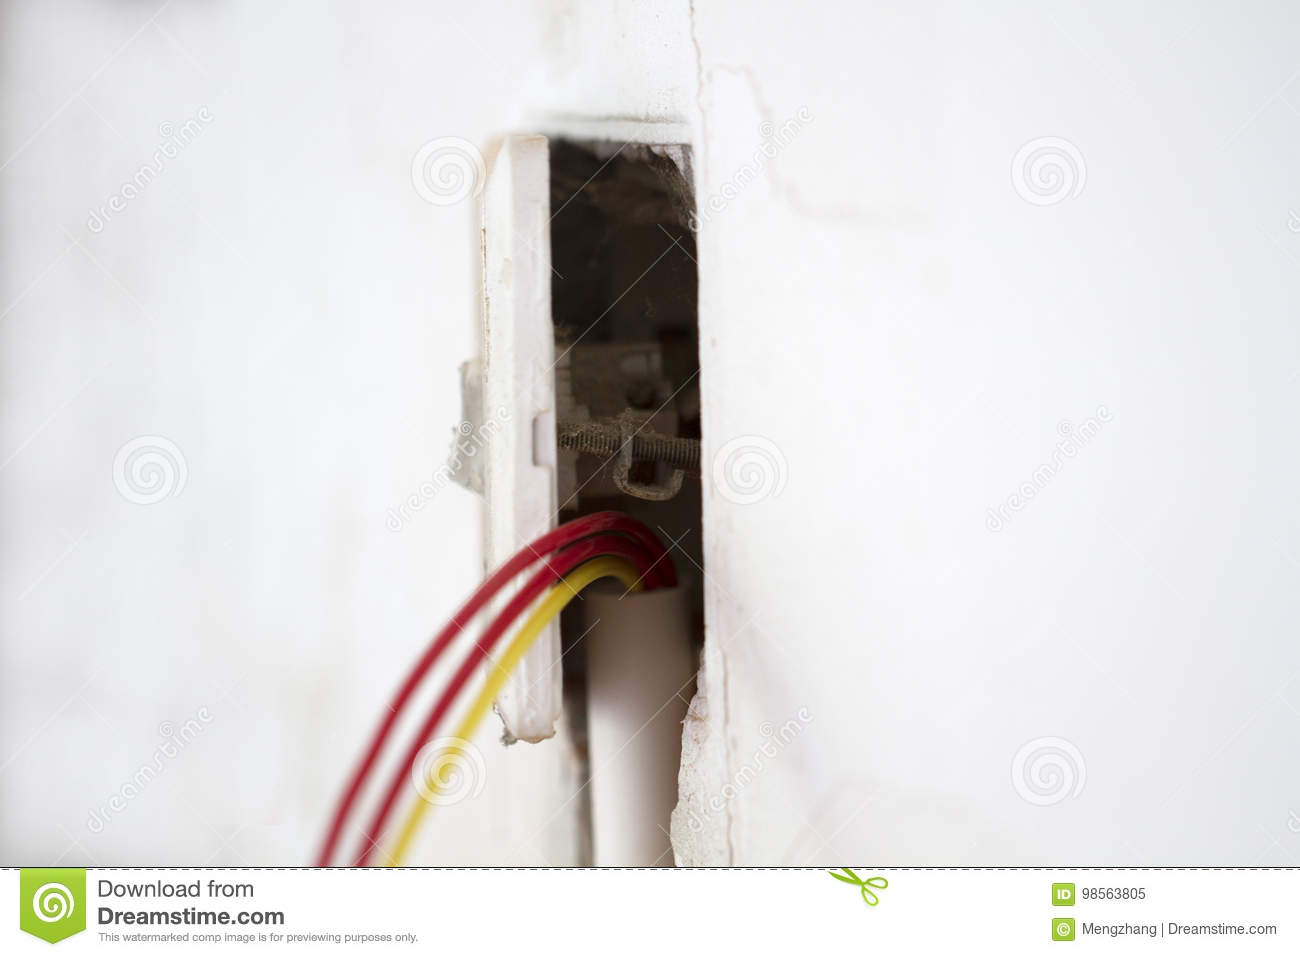 hight resolution of electrical renovation work cable electric electrical box with wiring during residential renovation a light switch hanging off the wall